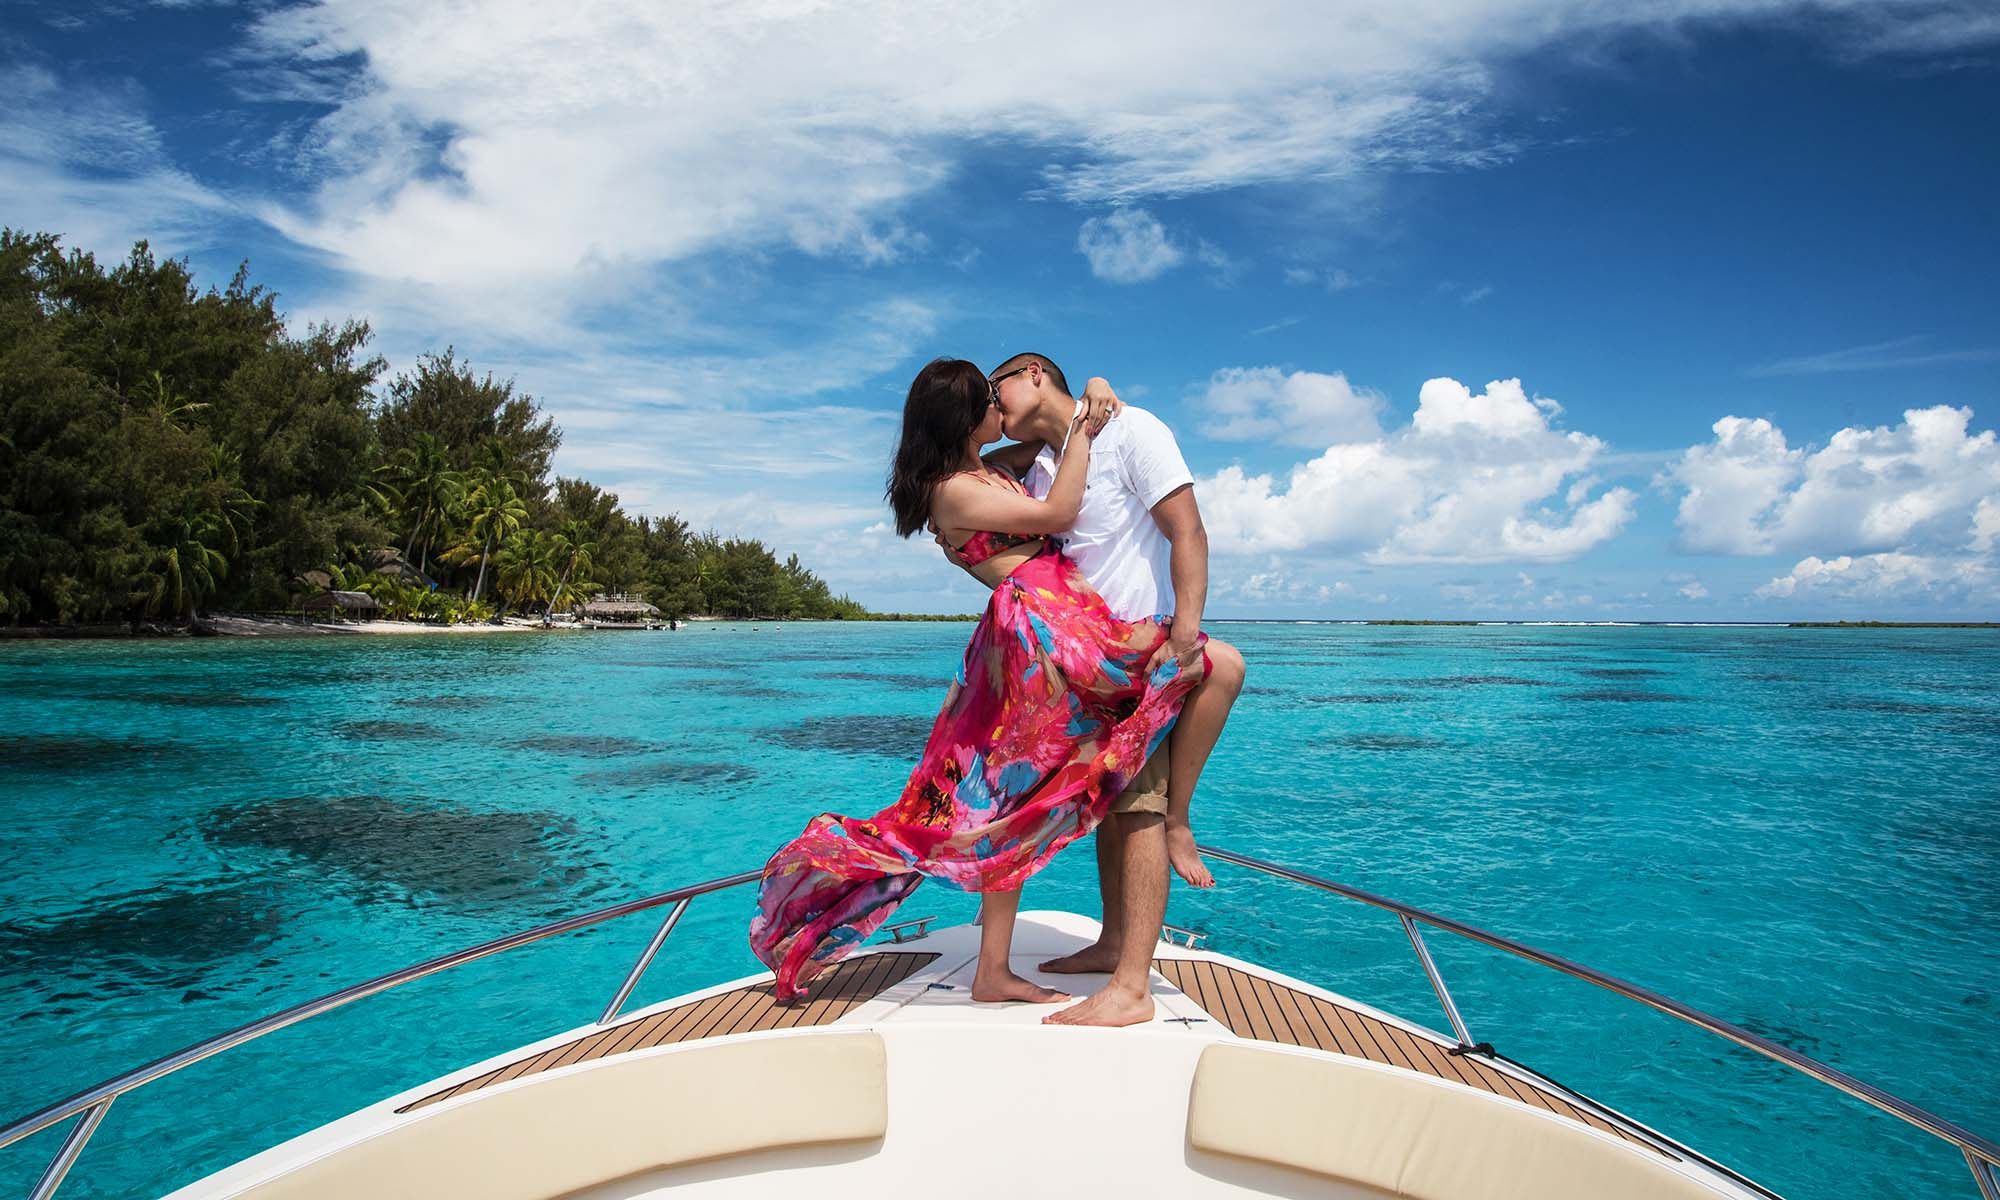 Enjoy a Romantic Lagoon Cruise with a Professional Photography Session